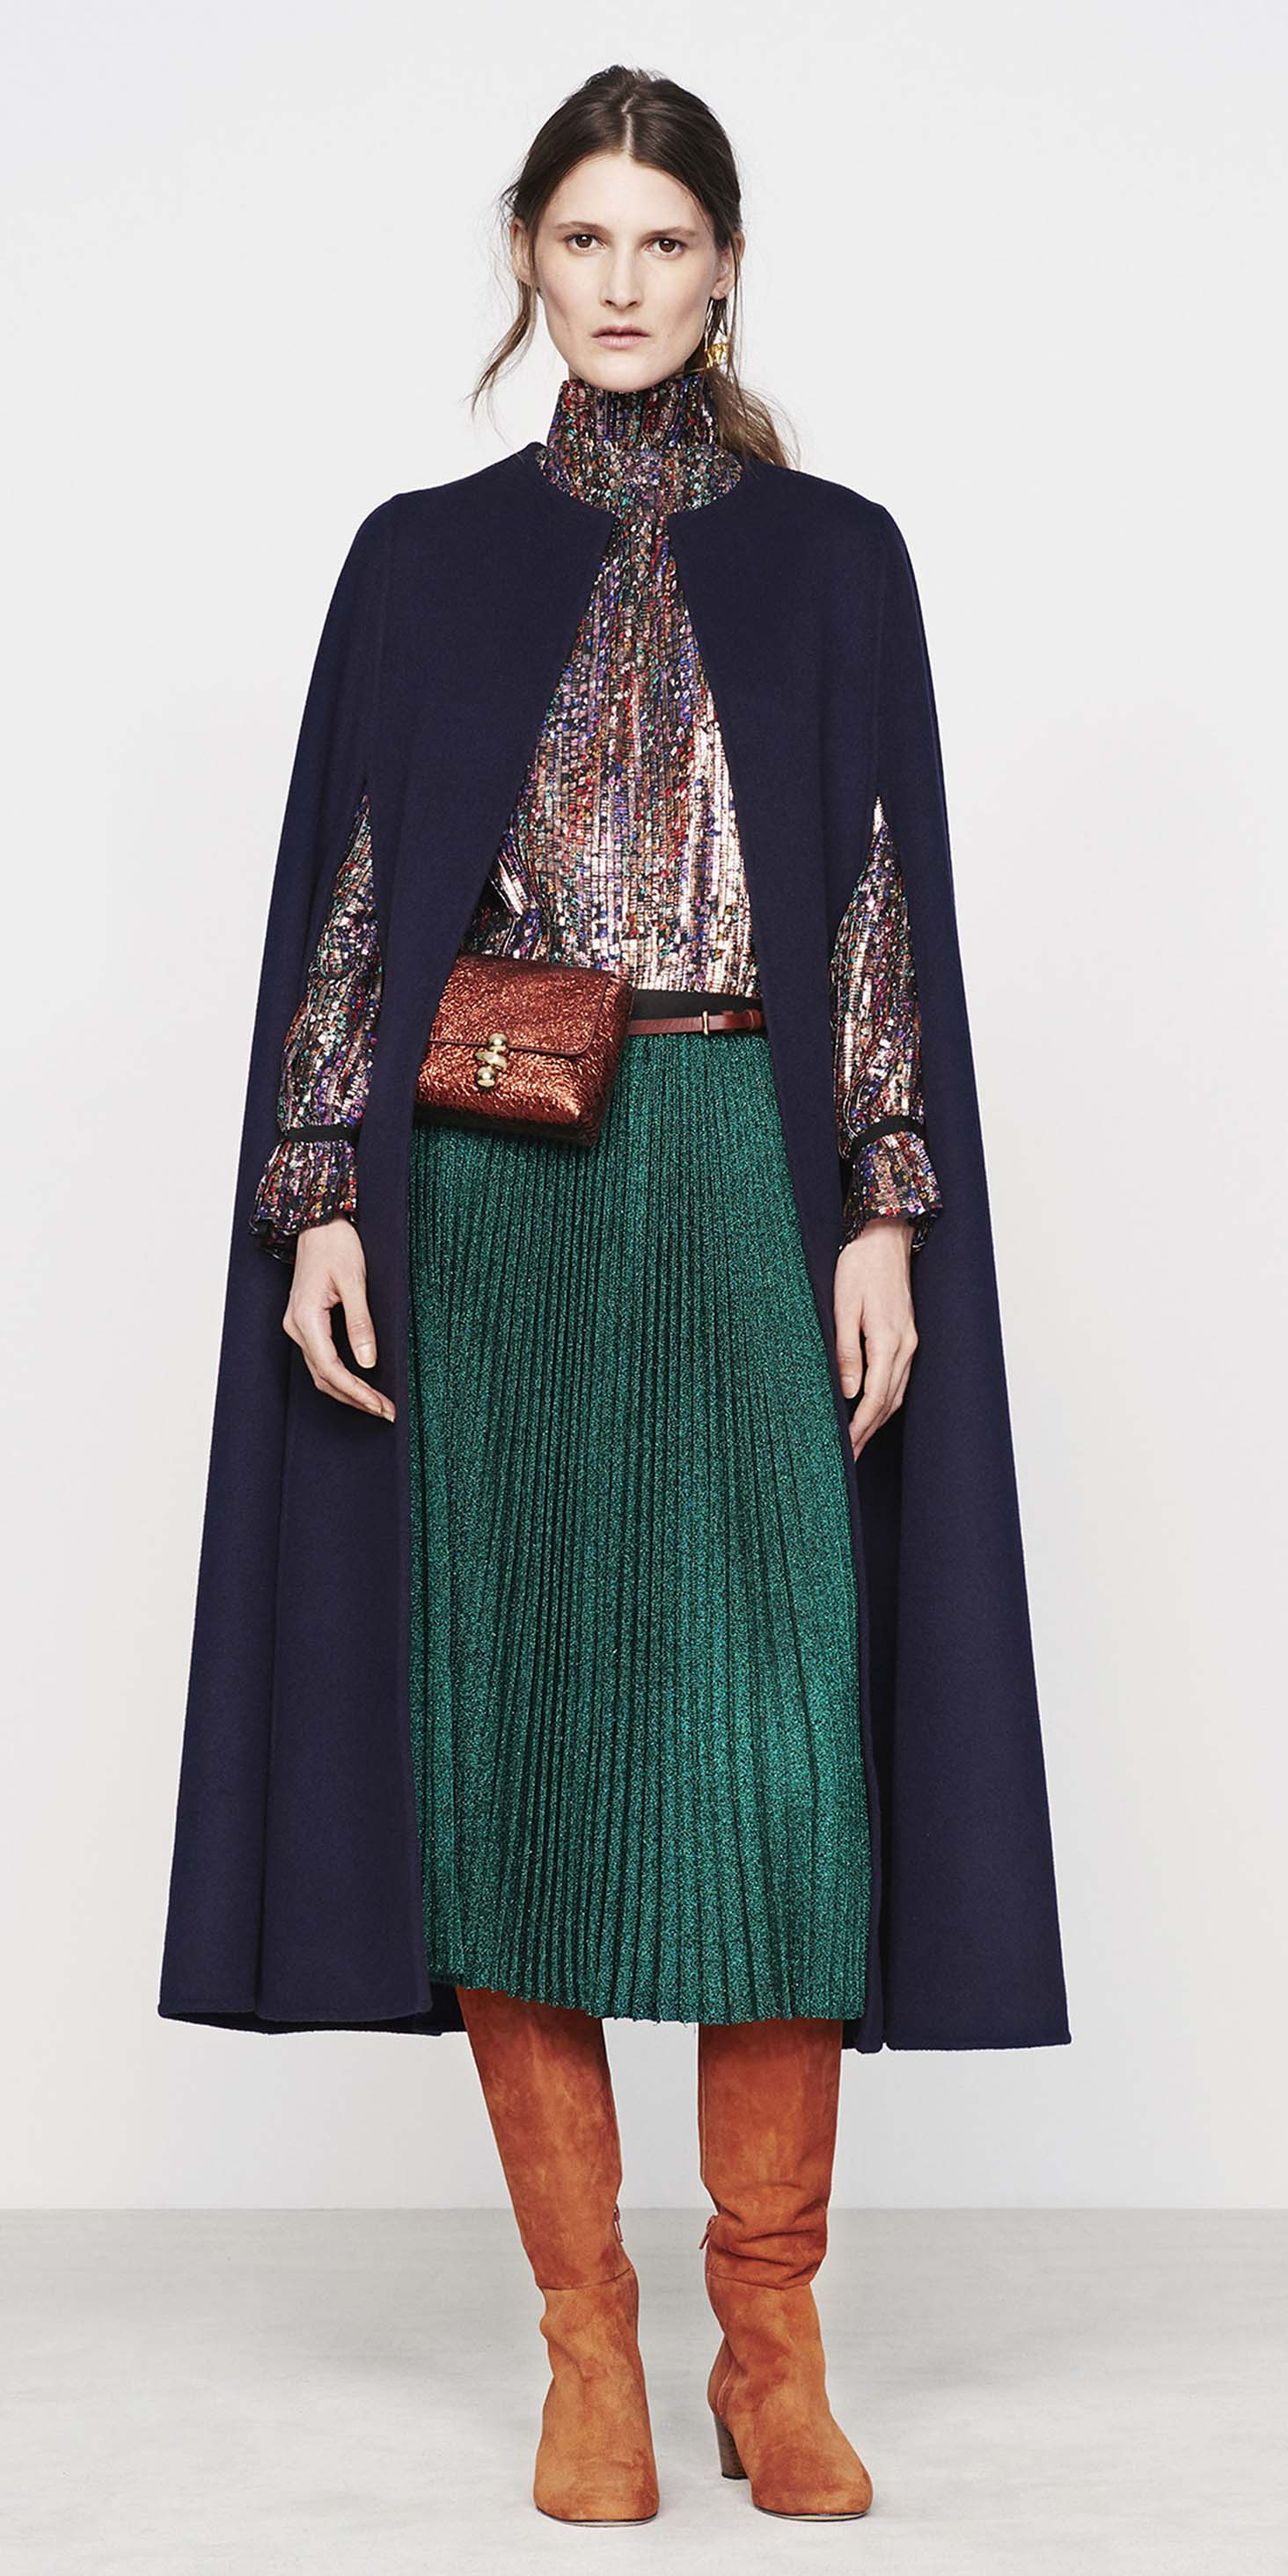 green-dark-midi-skirt-pleated-cognac-shoe-boots-fannypack-blue-navy-jacket-coat-fall-winter-hairr-lunch.jpg